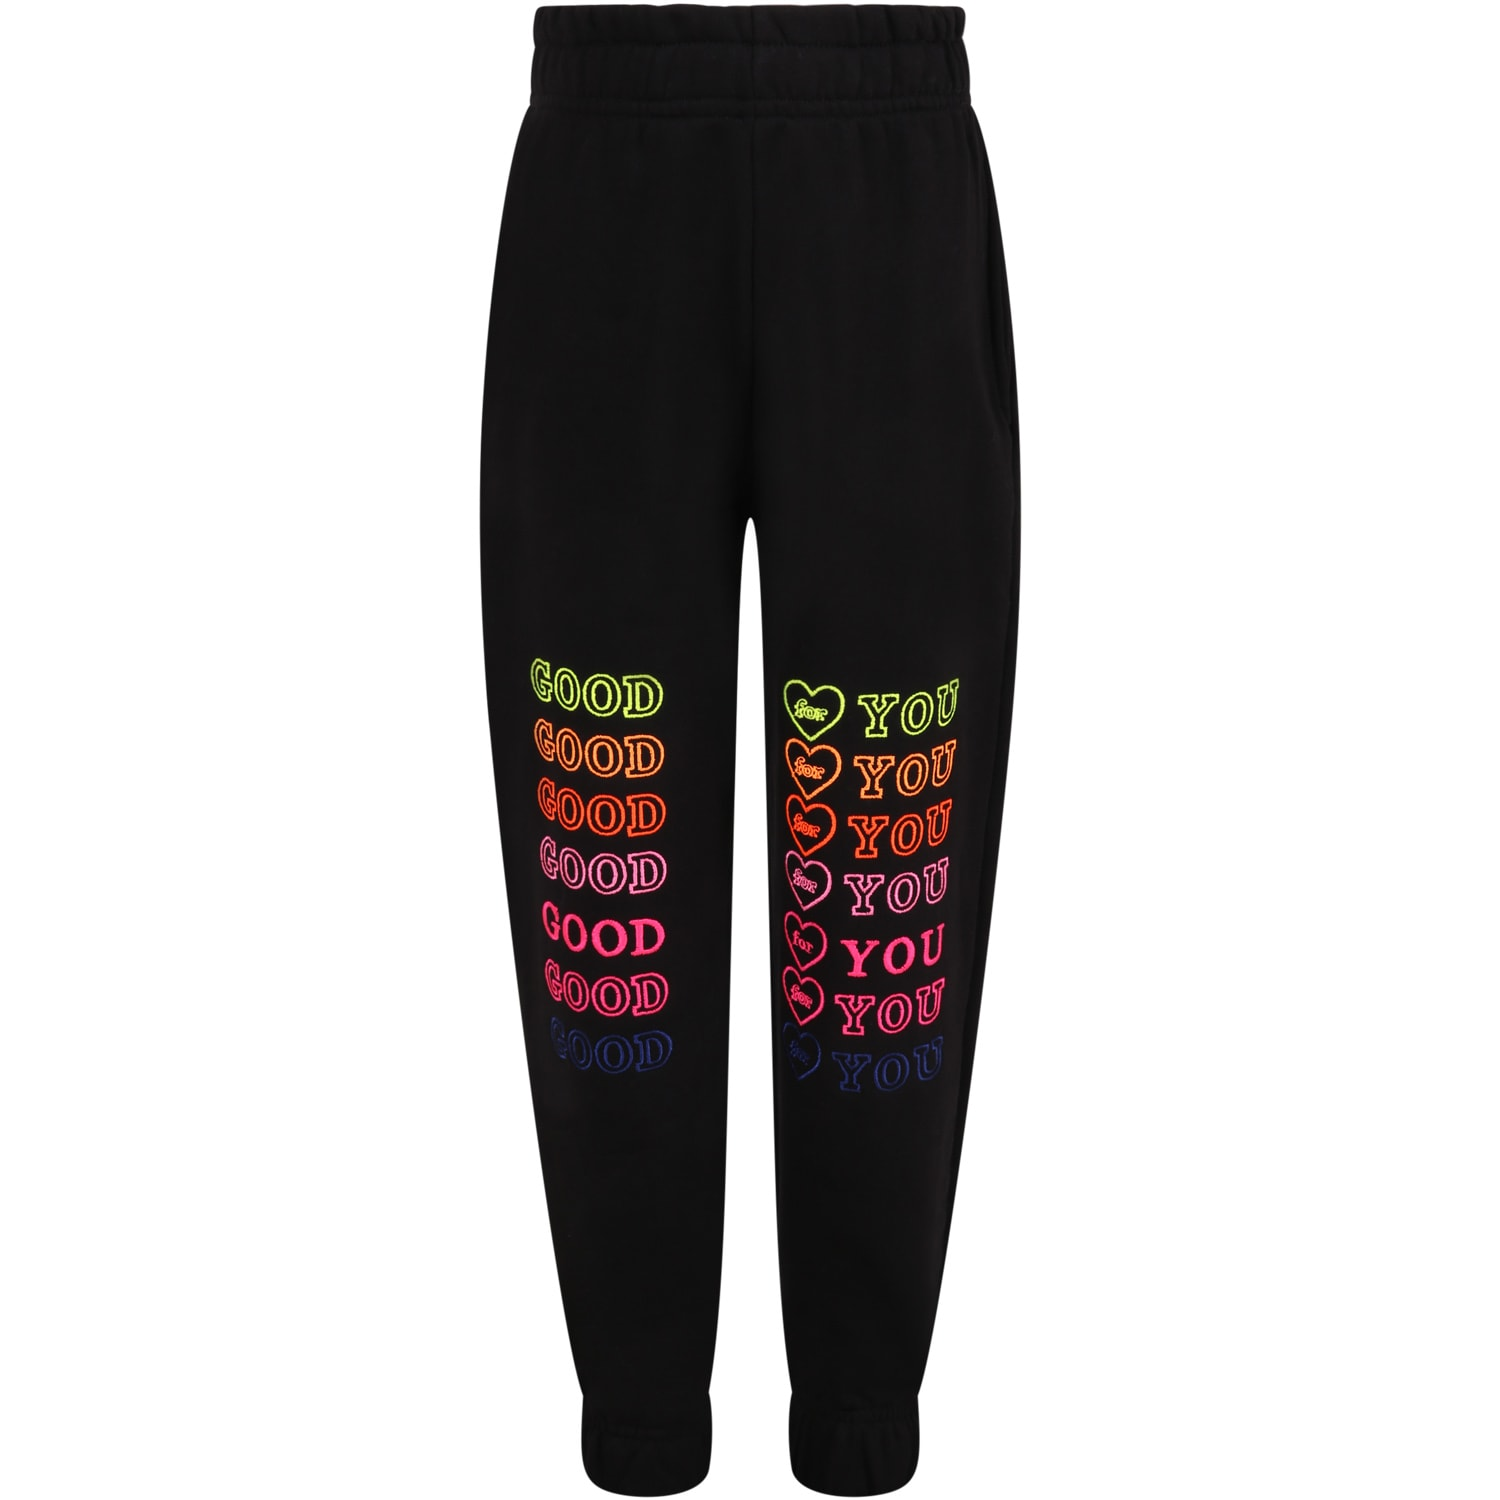 Black Sweatpant For Girl With Writings